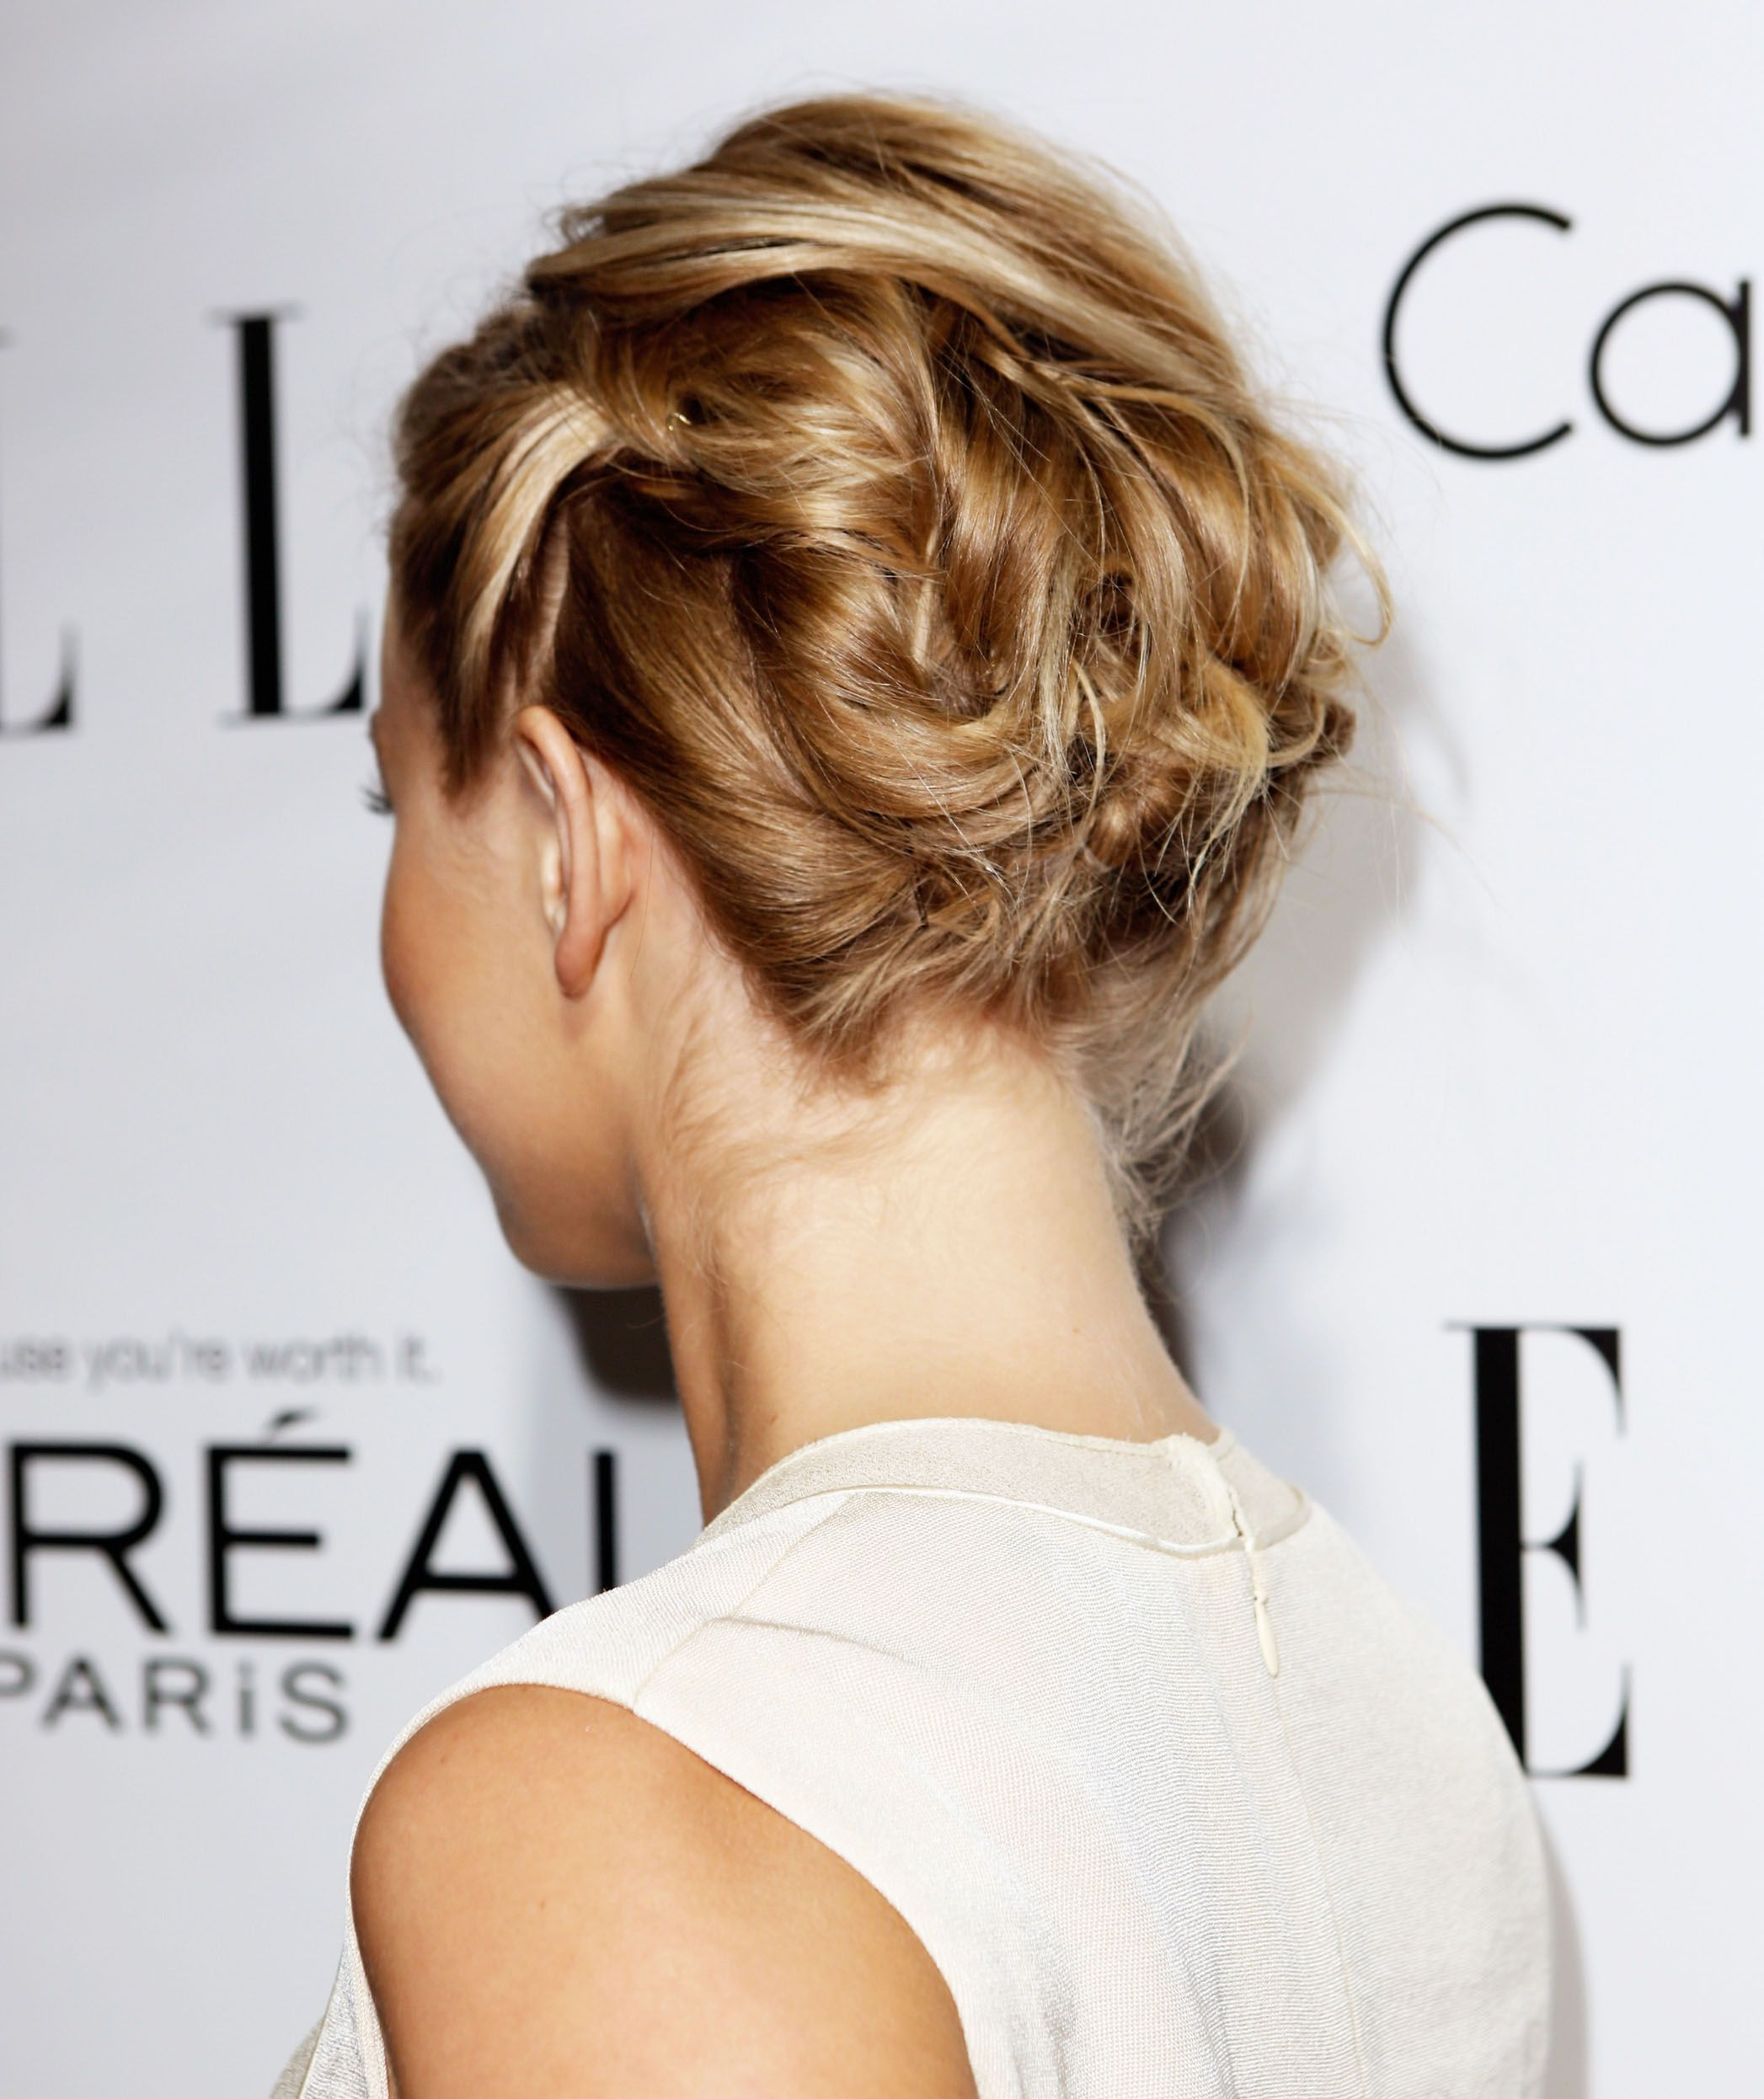 44 Incredibly Chic Updo Ideas For Short Hair